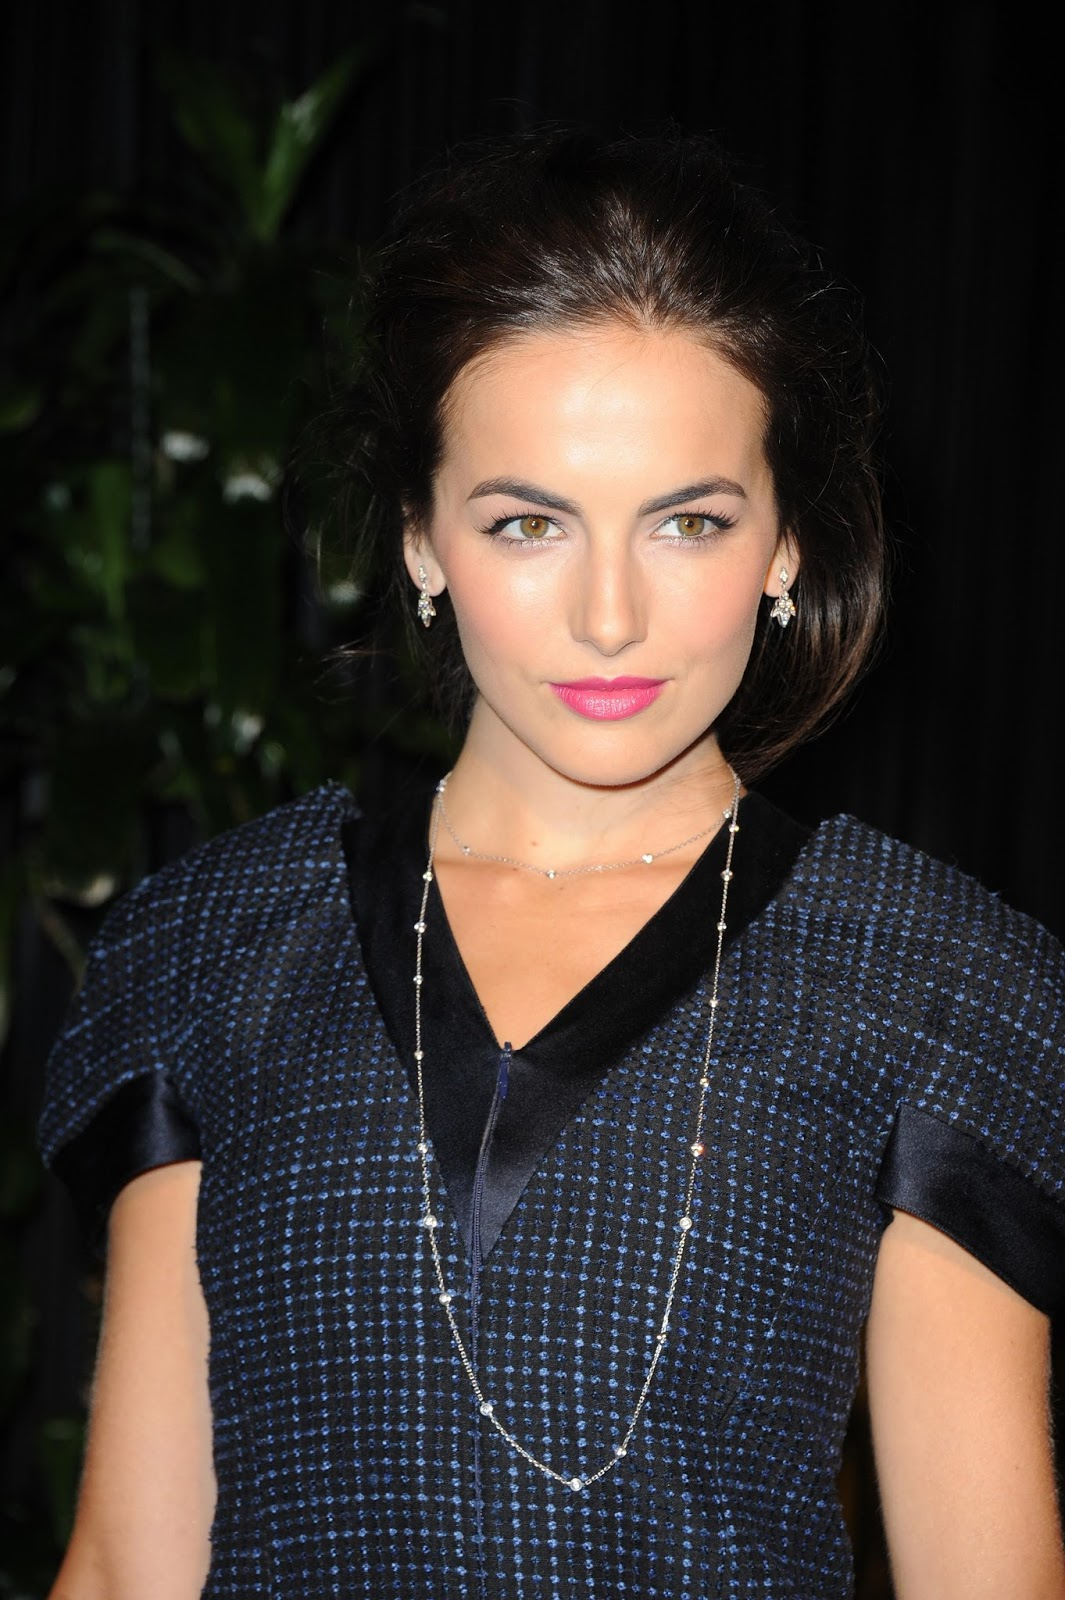 Camilla Belle Hd Wallpapers  Hd Wallpapers-3830